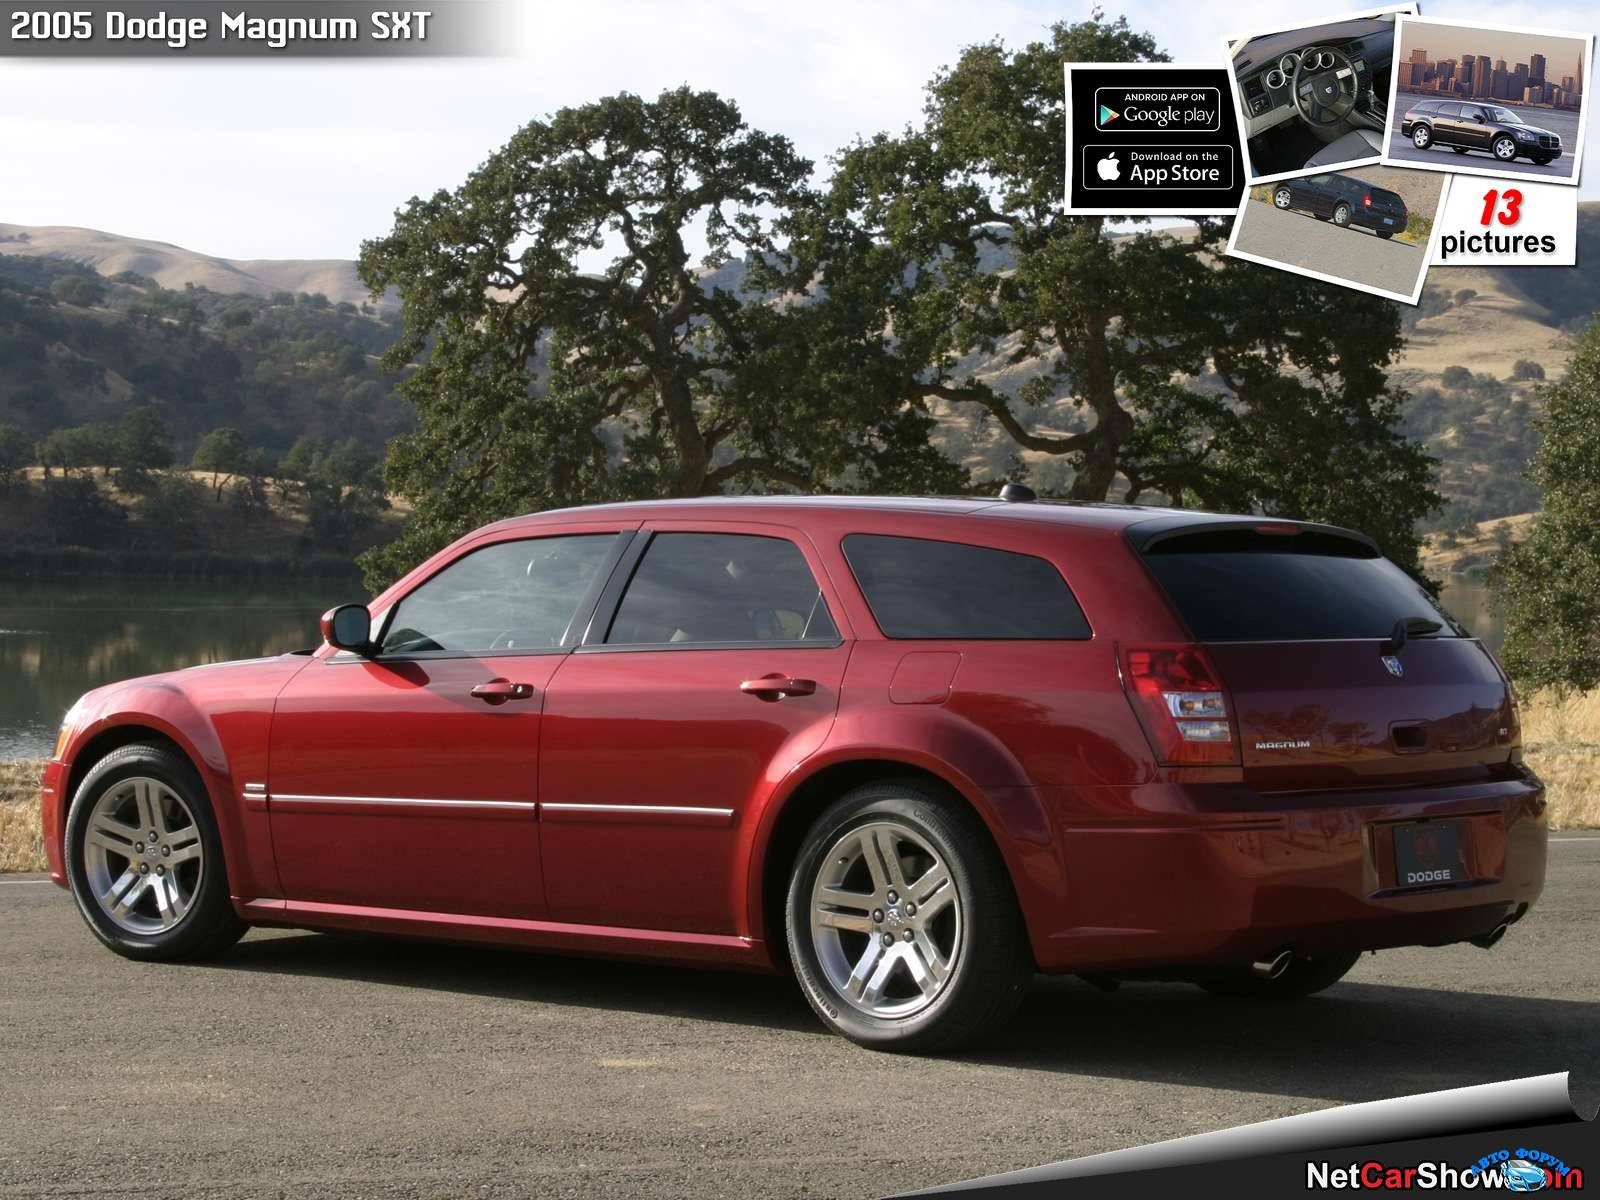 Dodge-Magnum_SXT_2005_1600x1200_wallpaper_04.jpg